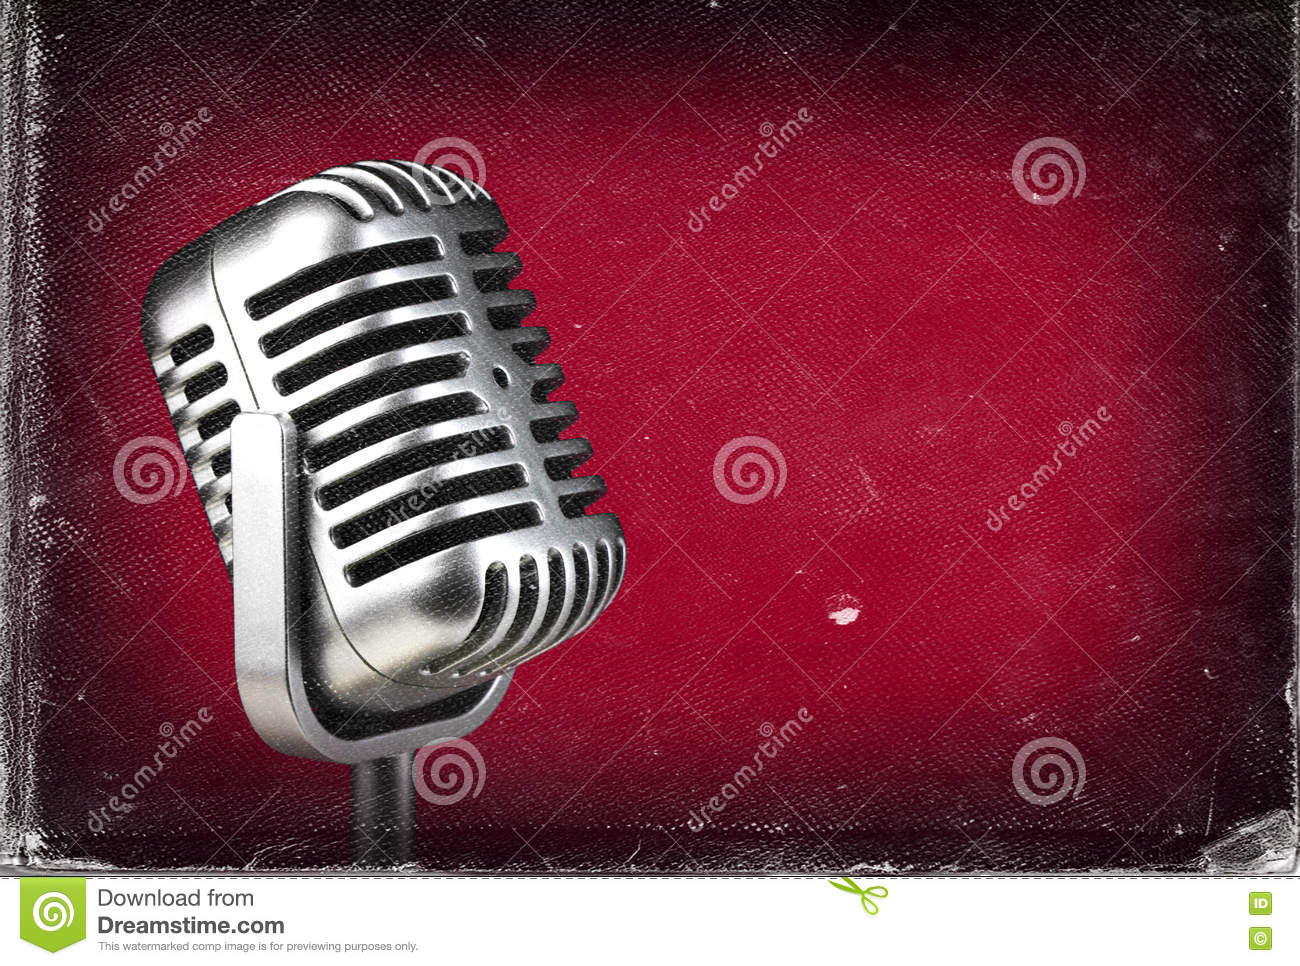 Retro microphone. ) Vintage style or worn paper photo image